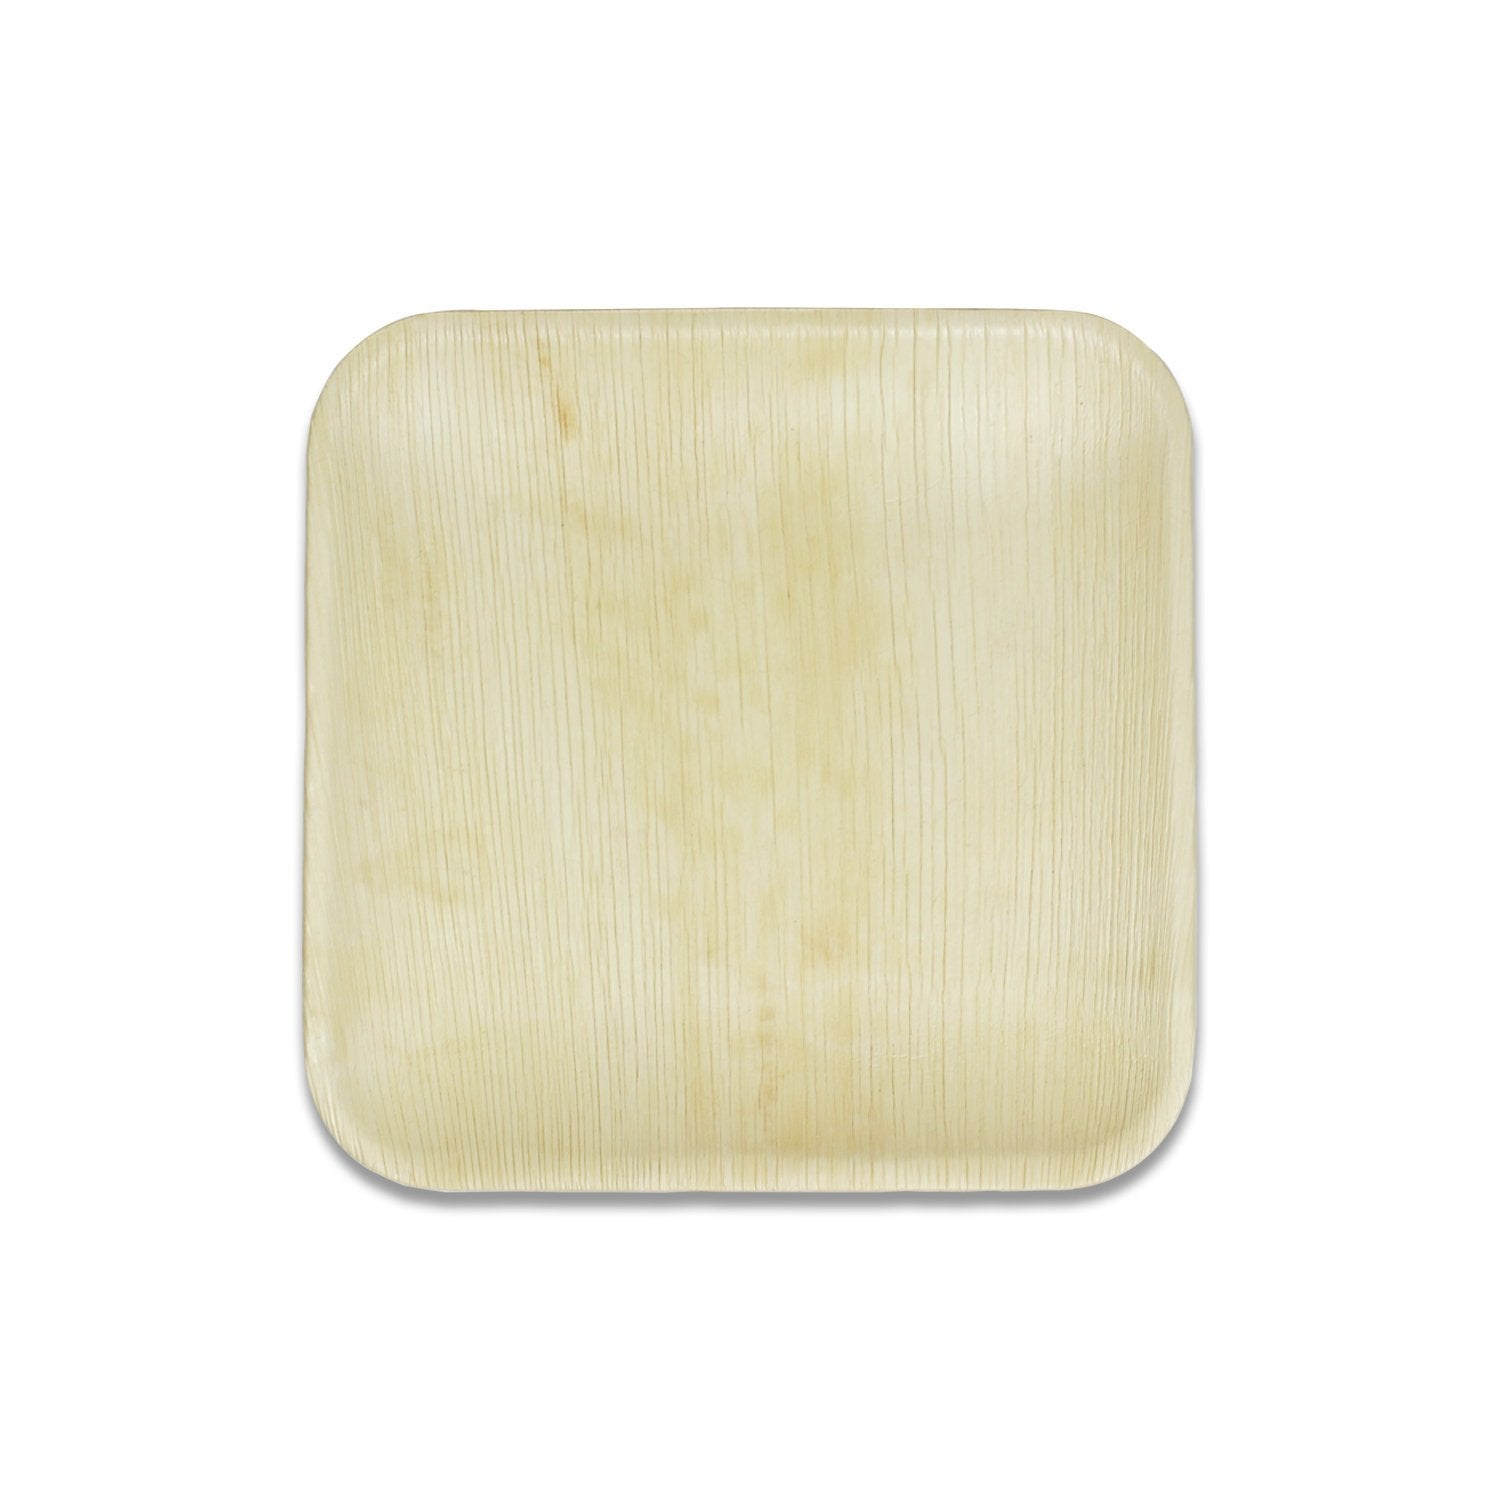 "Disposable Eco Friendly Non Toxic Palm Leaf 8"" Inch Square Plates"